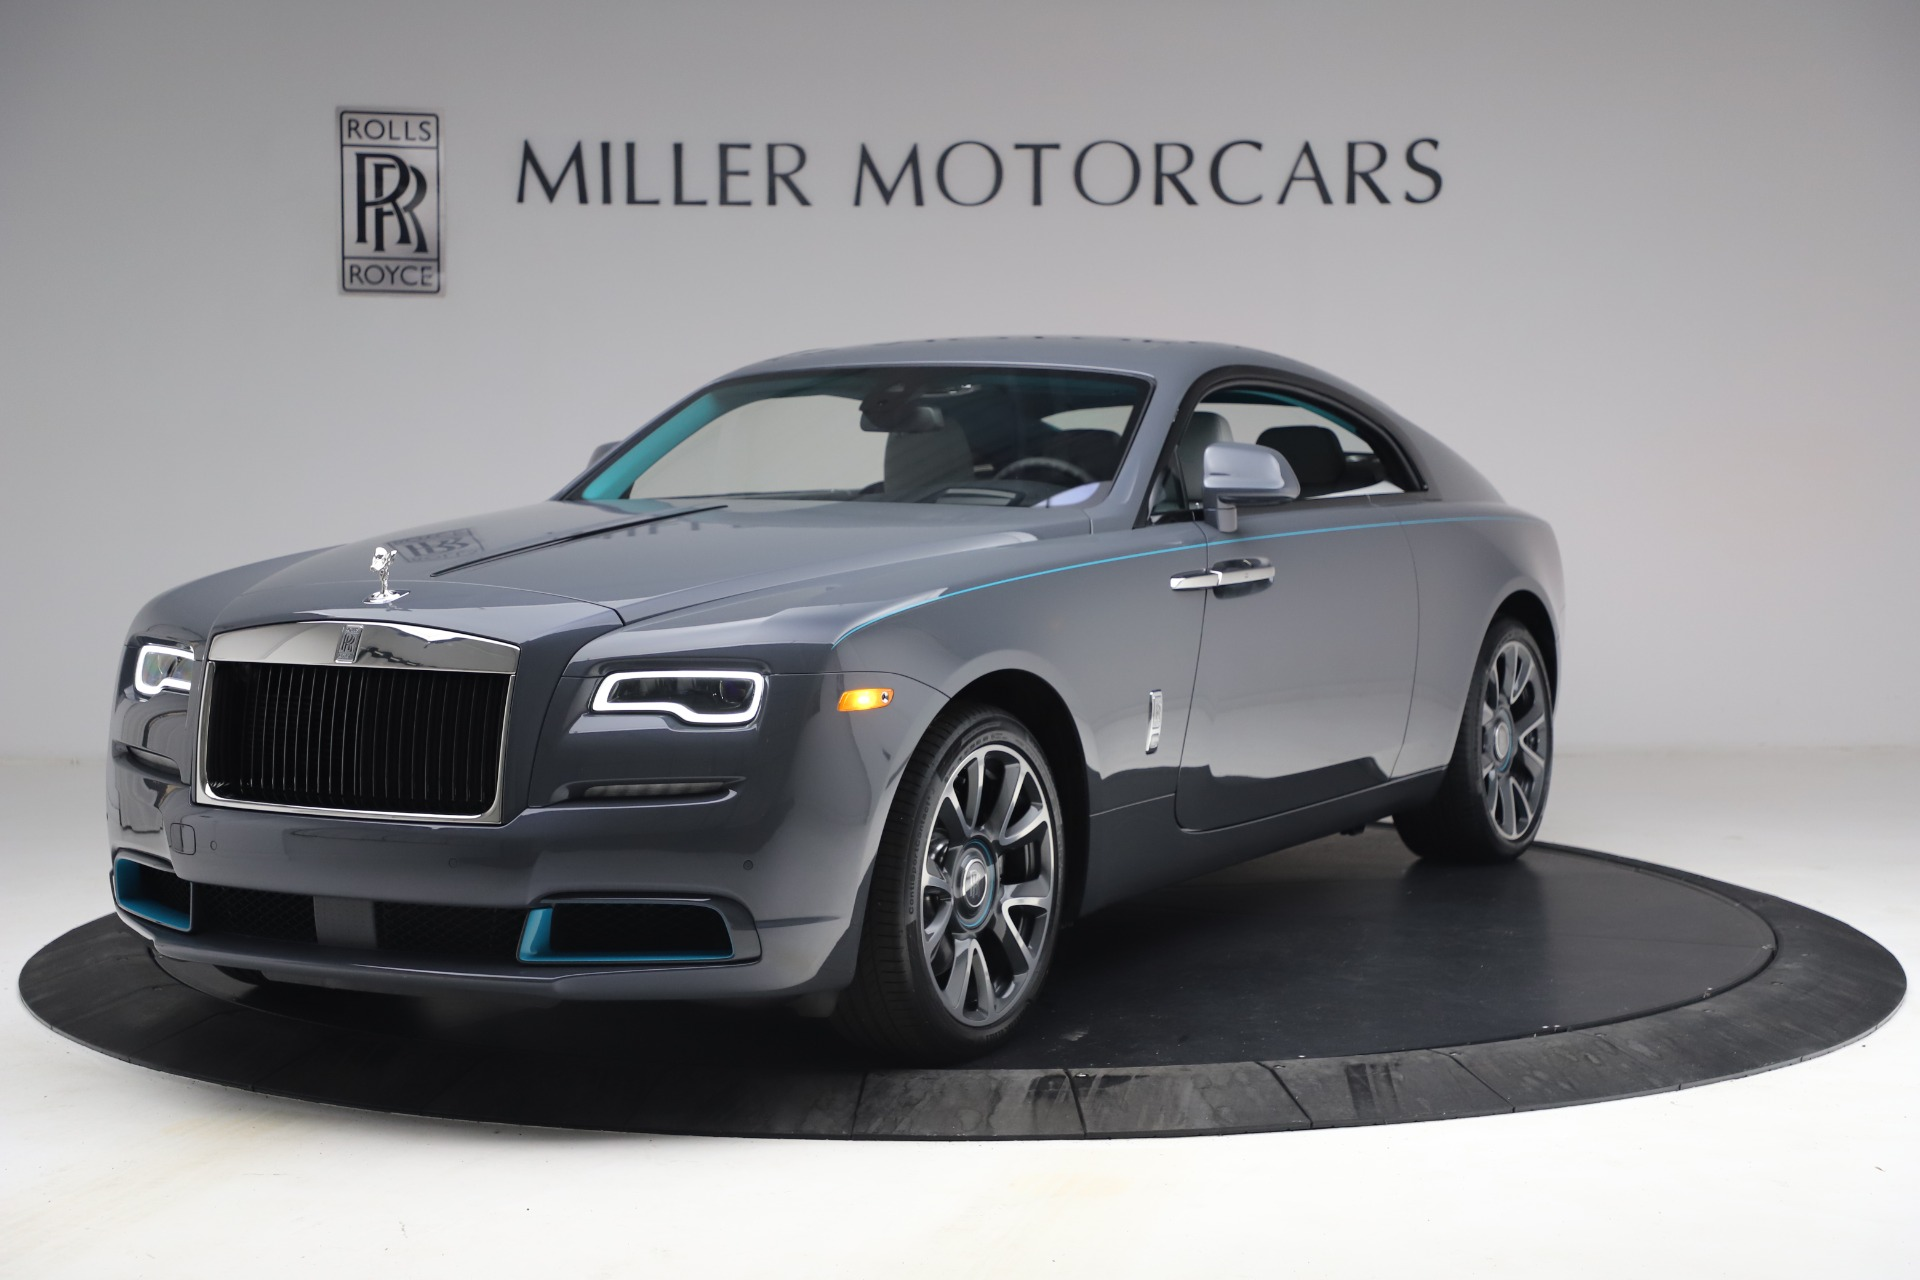 Used 2021 Rolls-Royce Wraith KRYPTOS for sale $444,275 at Alfa Romeo of Greenwich in Greenwich CT 06830 1